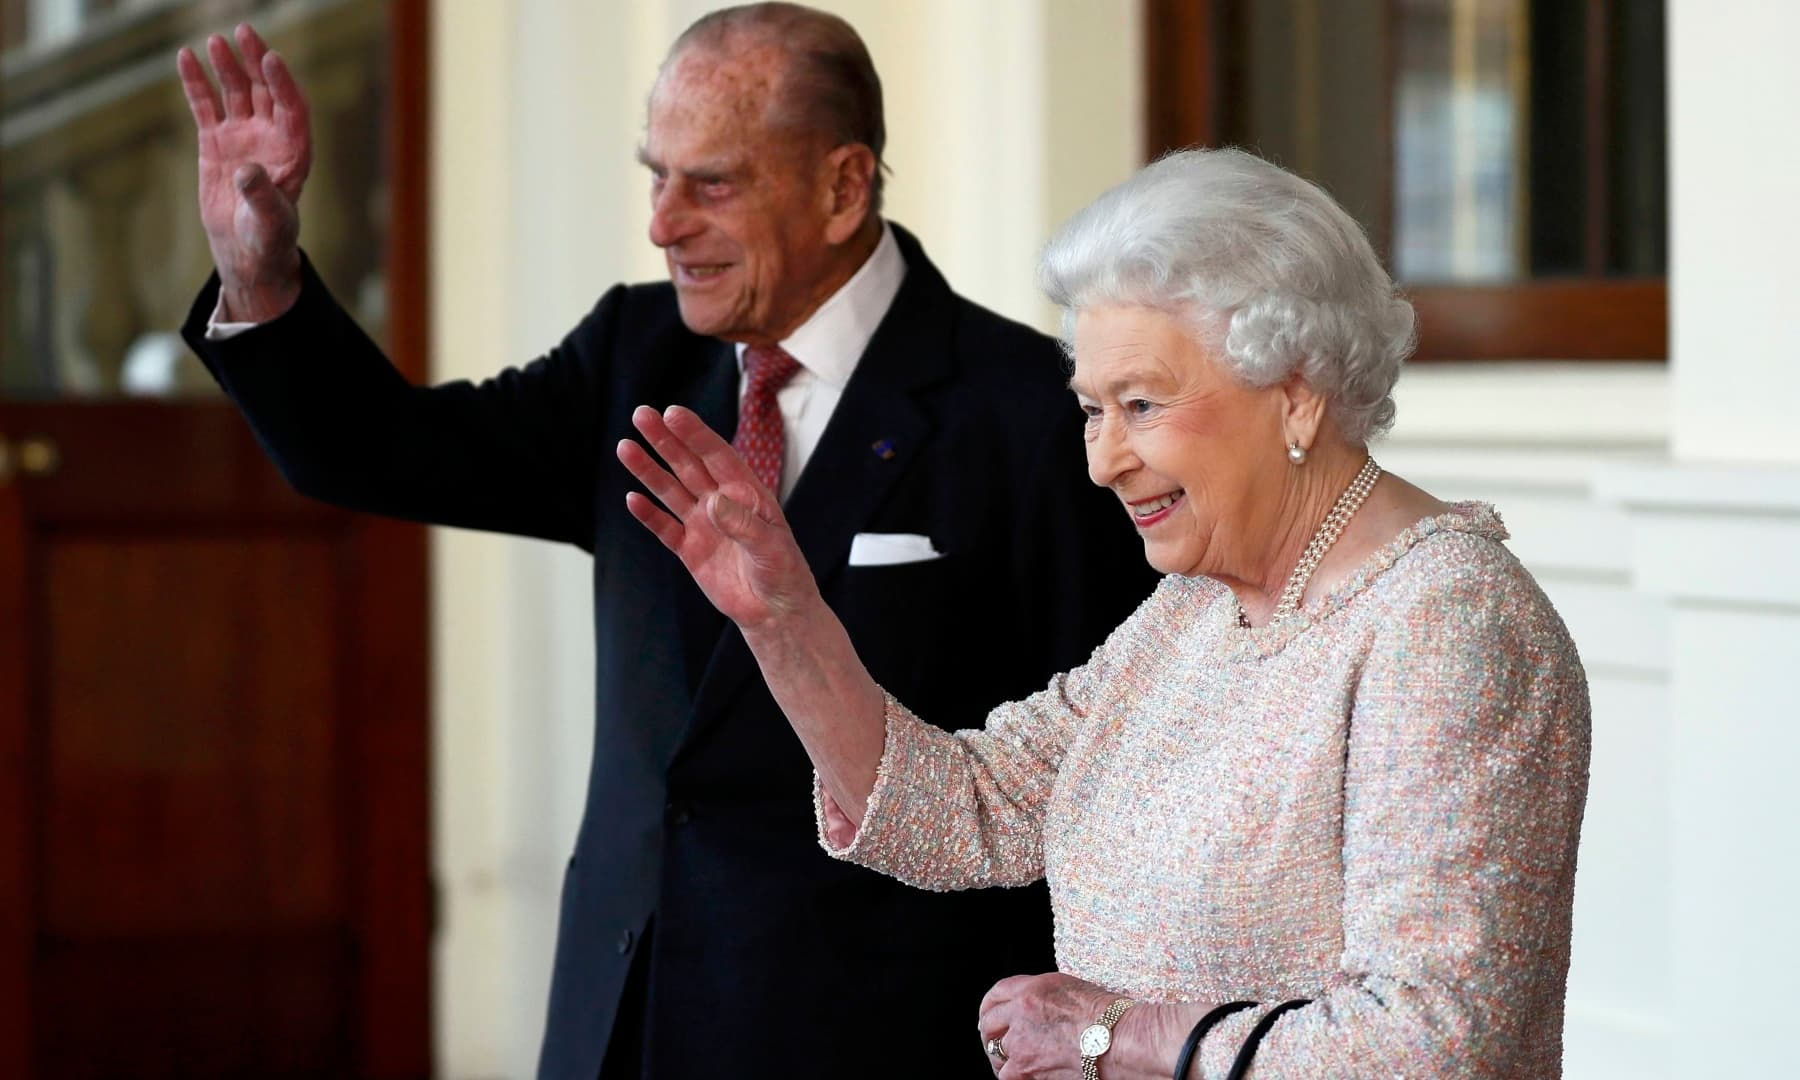 Britain's Queen Elizabeth and Prince Philip bid farewell to Colombia's President Juan Manuel Santos and his wife Maria Clemencia de Santos following their state visit, at Buckingham Palace in London, Britain. — Reuters/File